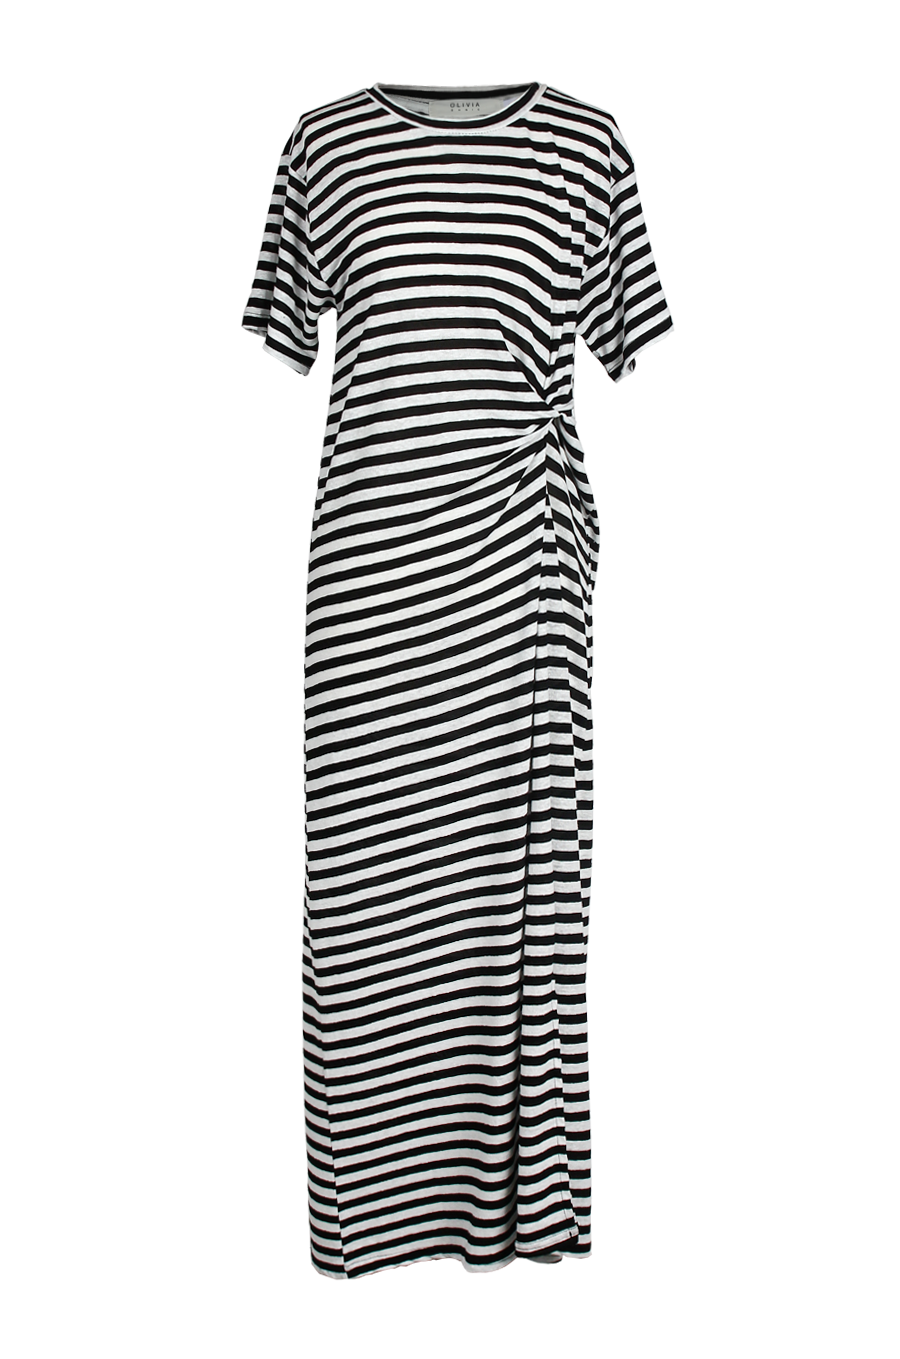 OLIVIA NZ Store online | Sasha Striped Dress / Black